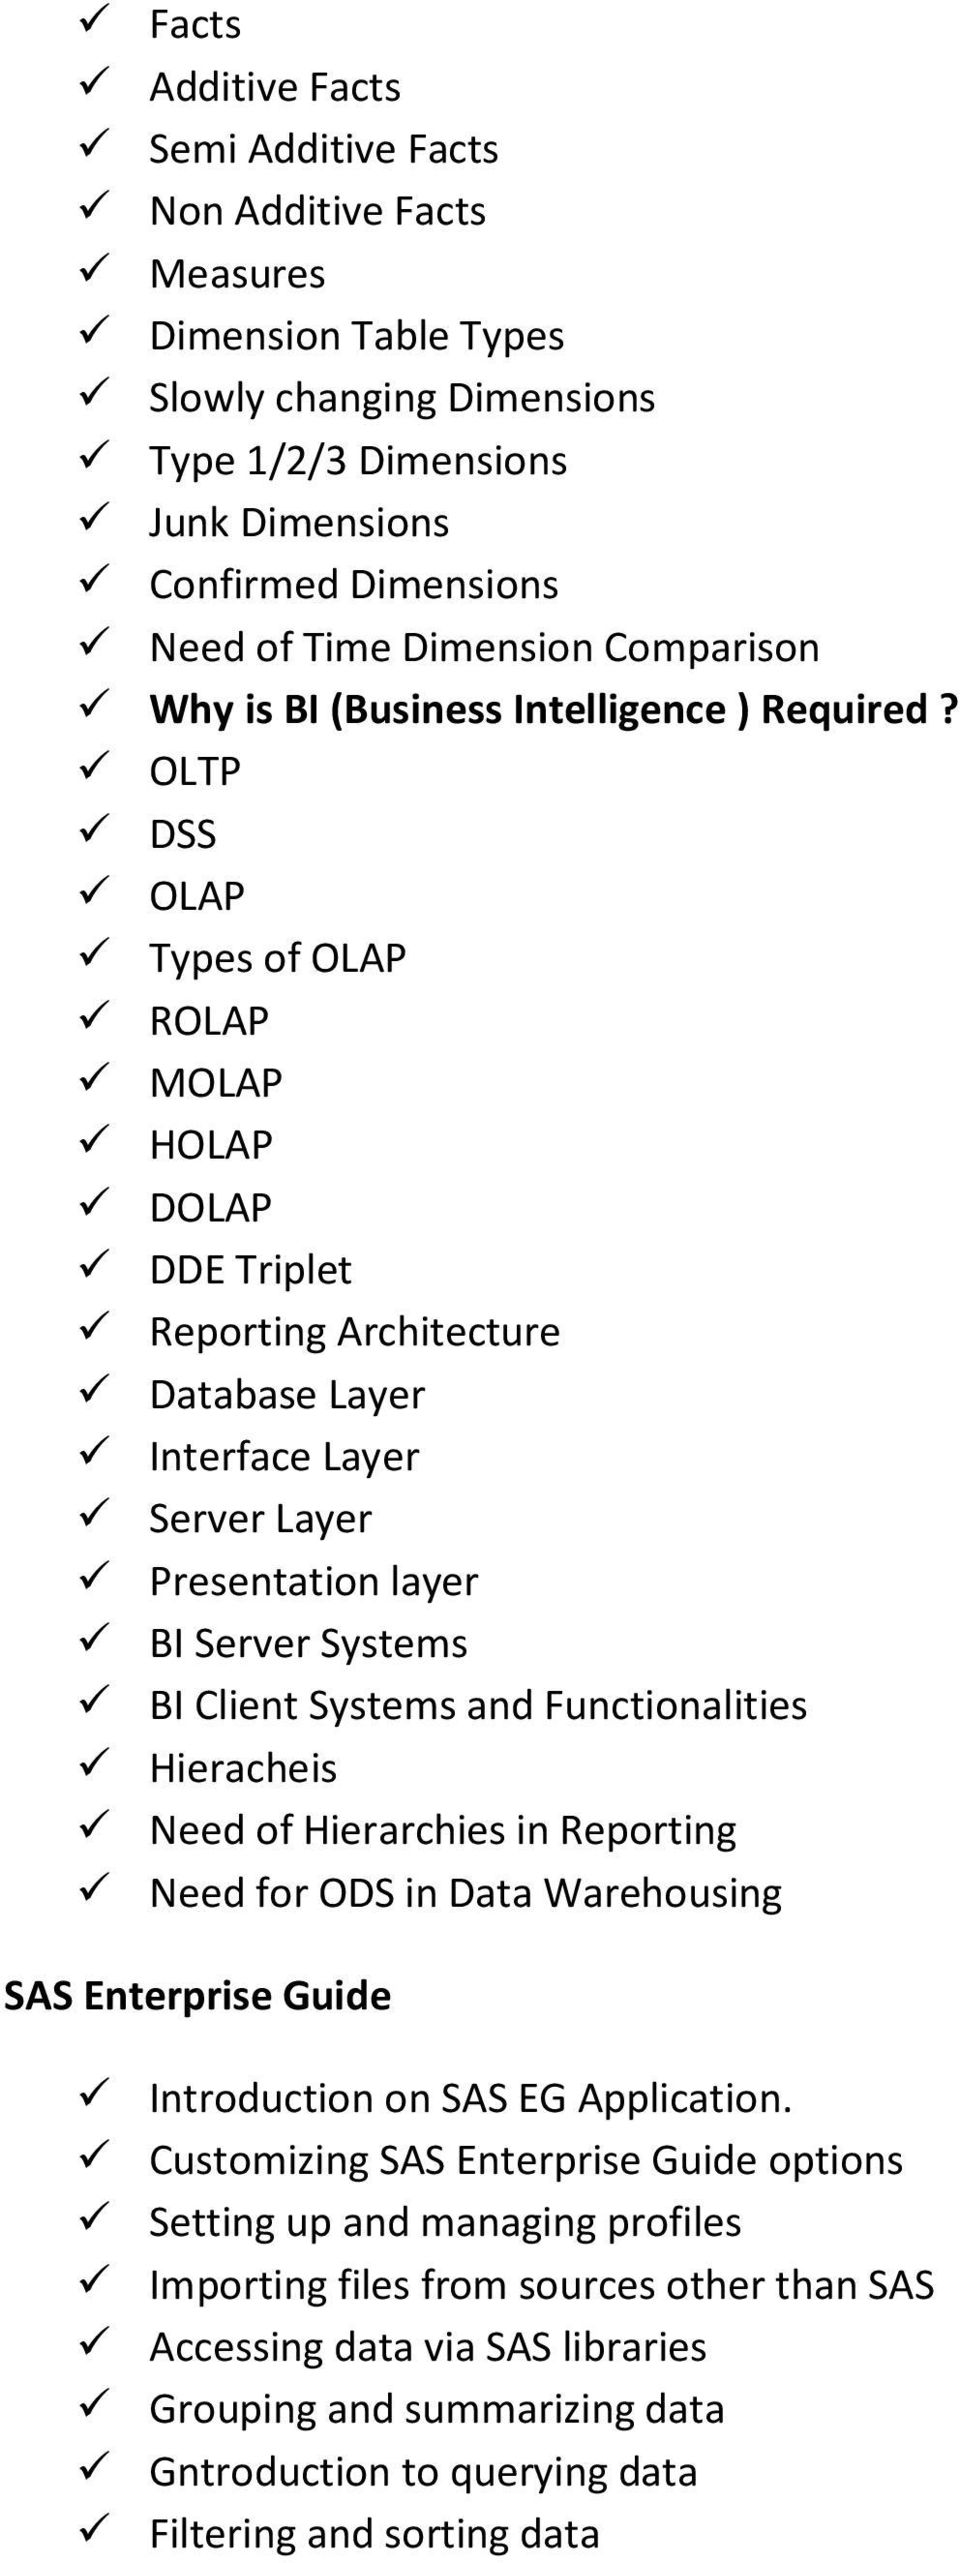 OLTP DSS OLAP Types of OLAP ROLAP MOLAP HOLAP DOLAP DDE Triplet Reporting Architecture Database Layer Interface Layer Server Layer Presentation layer BI Server Systems BI Client Systems and